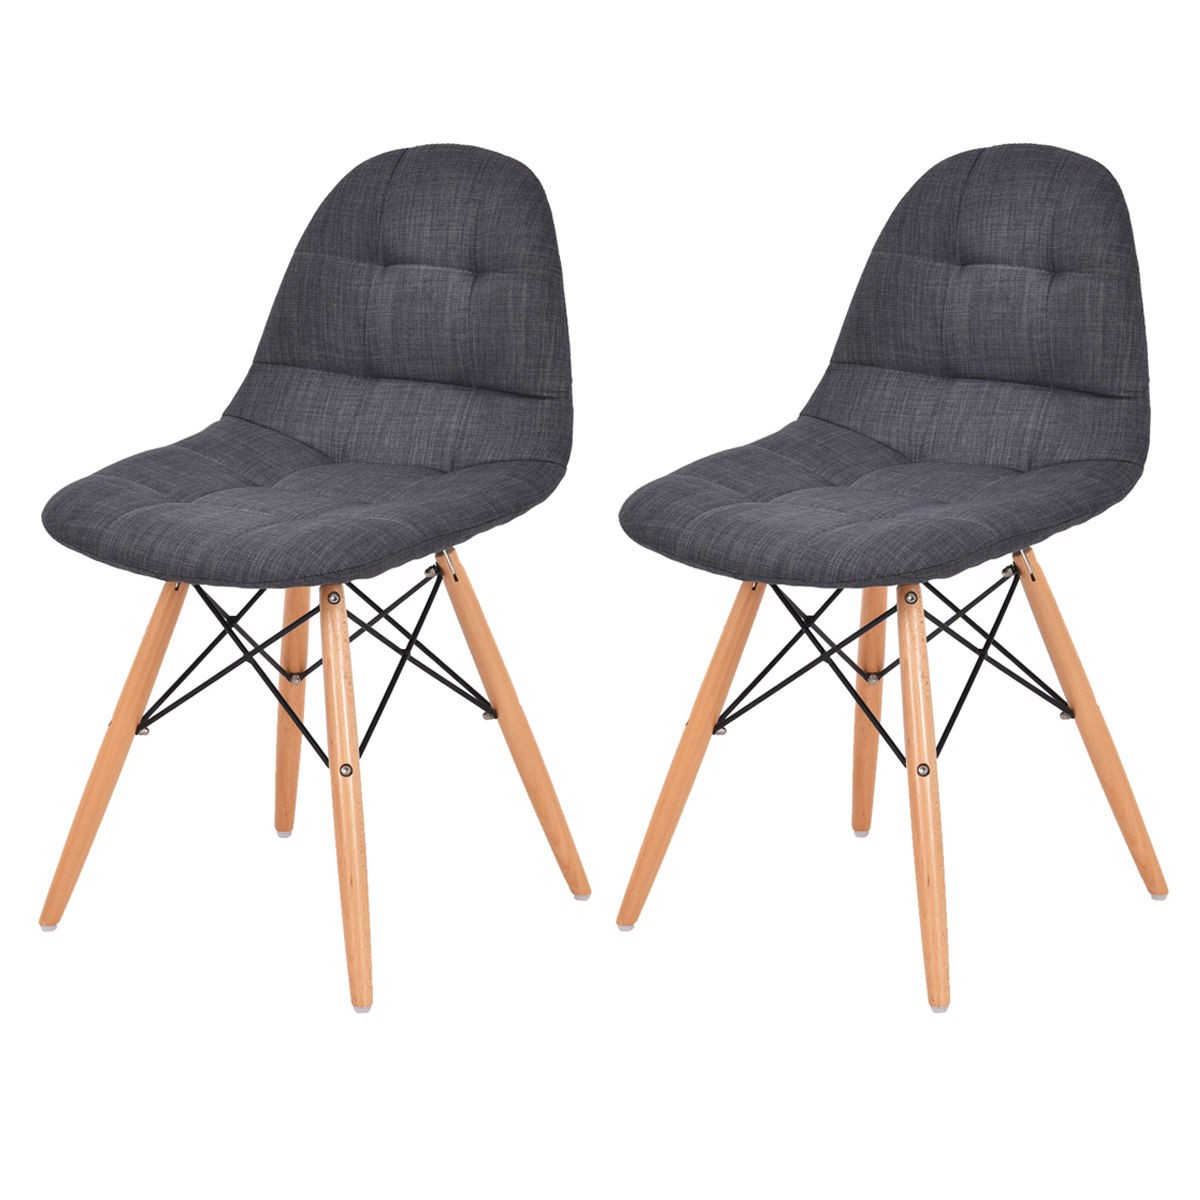 2PC Set Mid Century Modern Style Upholstered DSW Dining Side Chair Wood Leg Seat